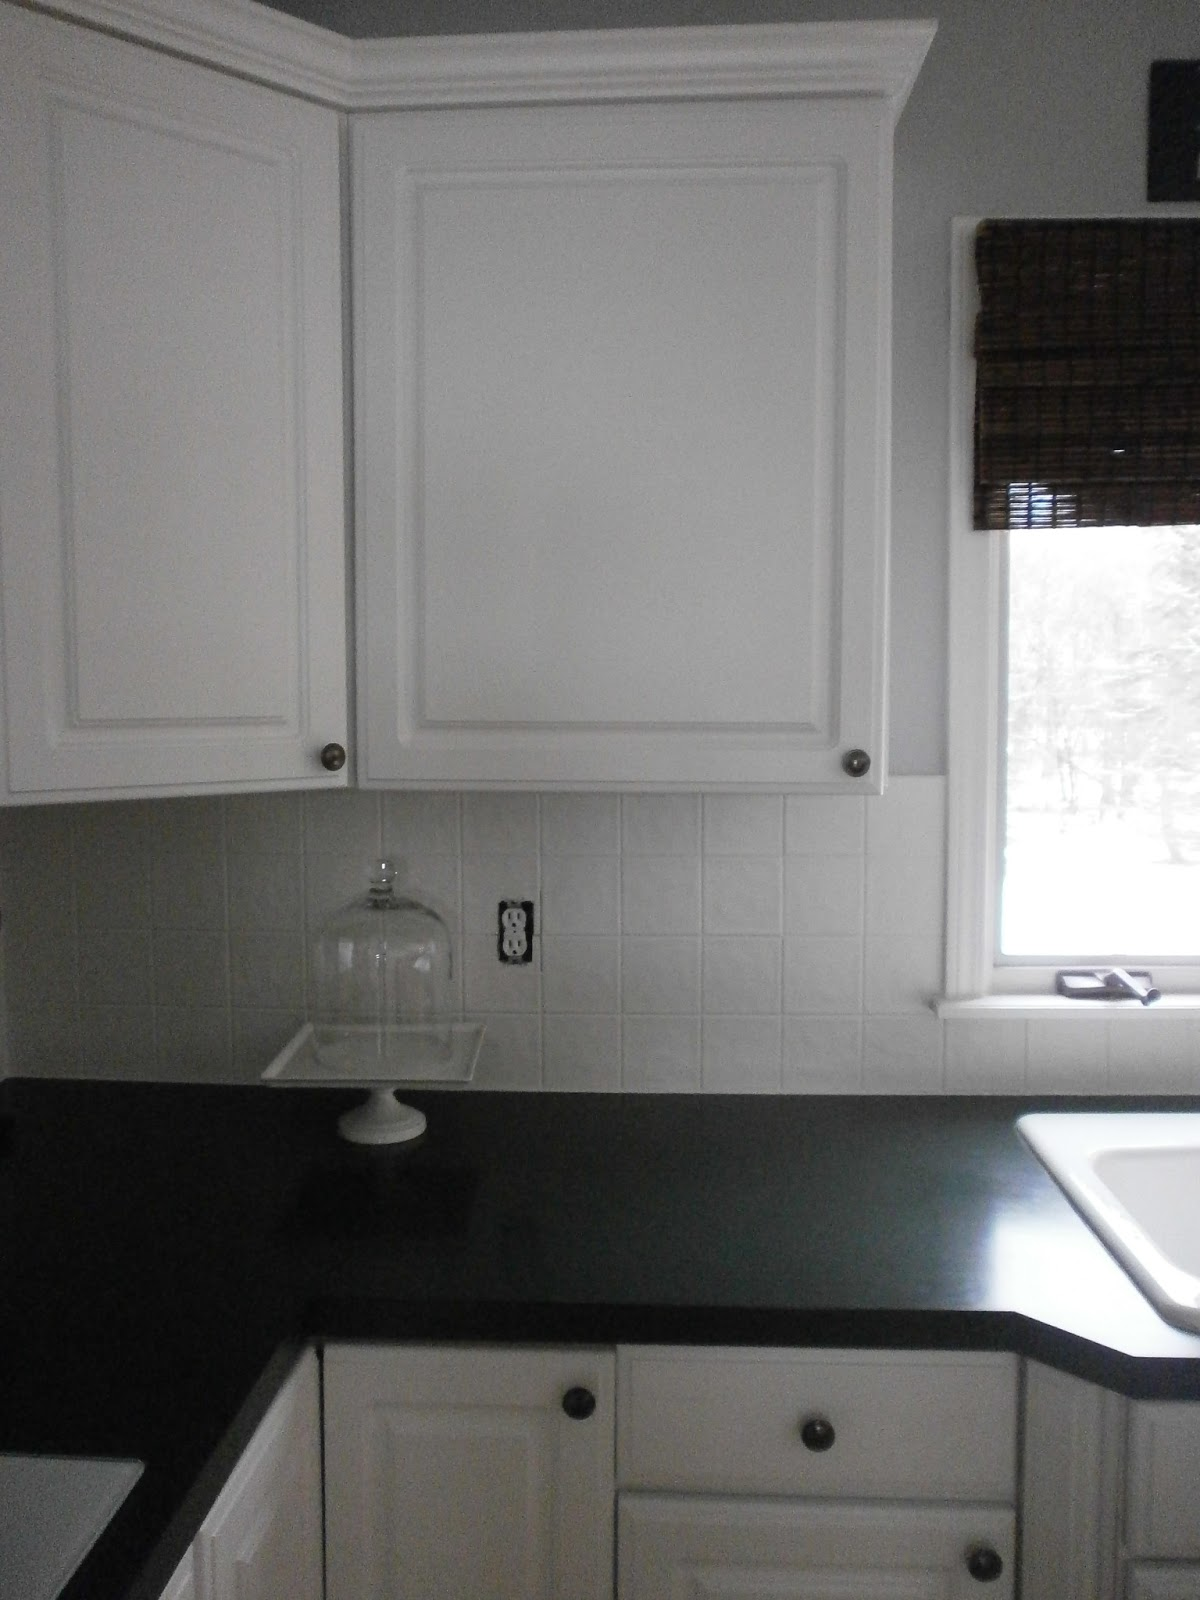 Diy painting a ceramic tile backsplash doublecrazyfo Image collections